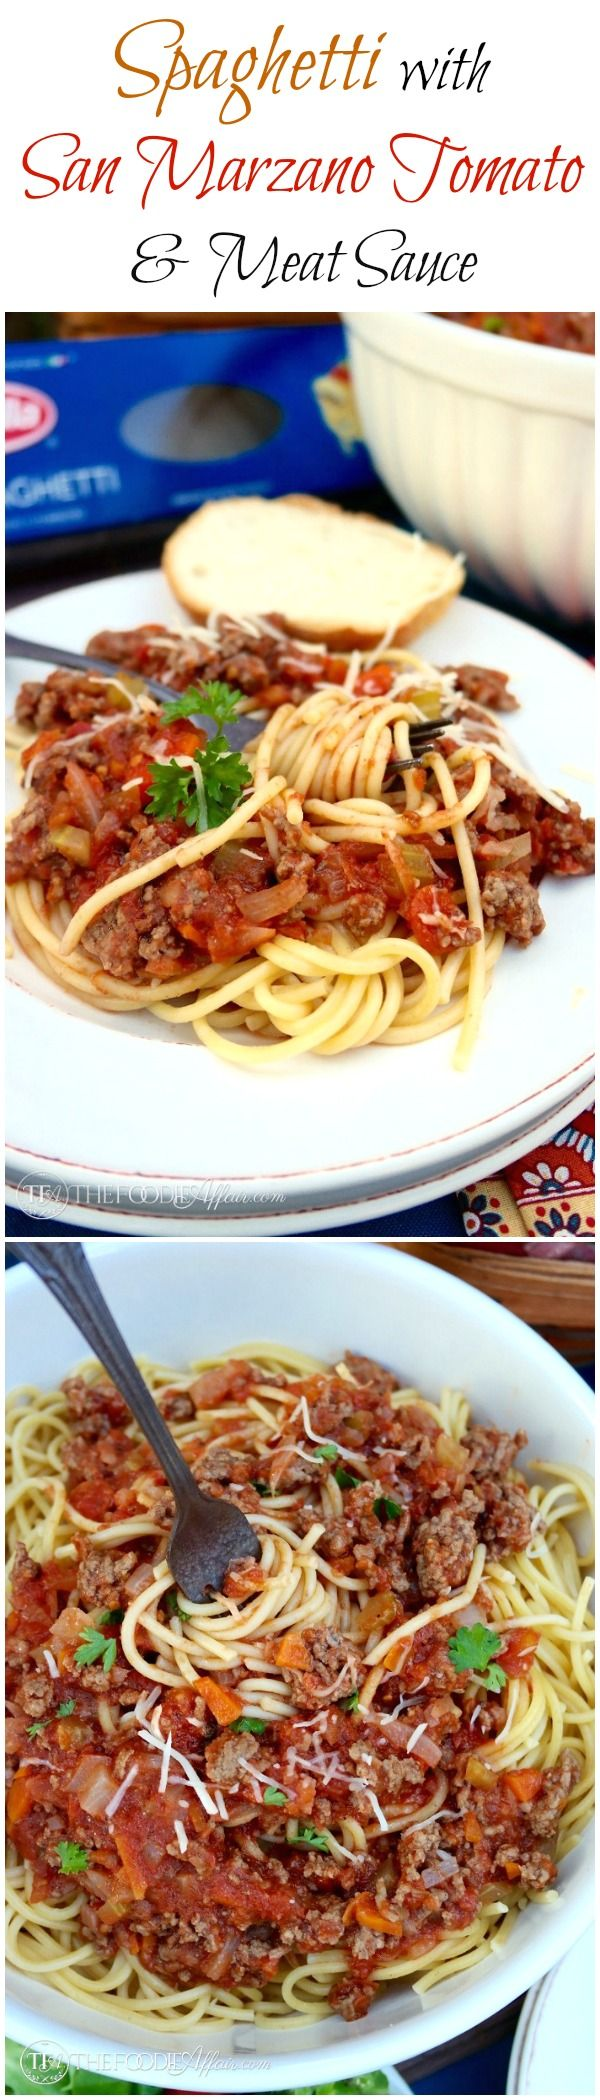 how to make spaghetti meat sauce from scratch